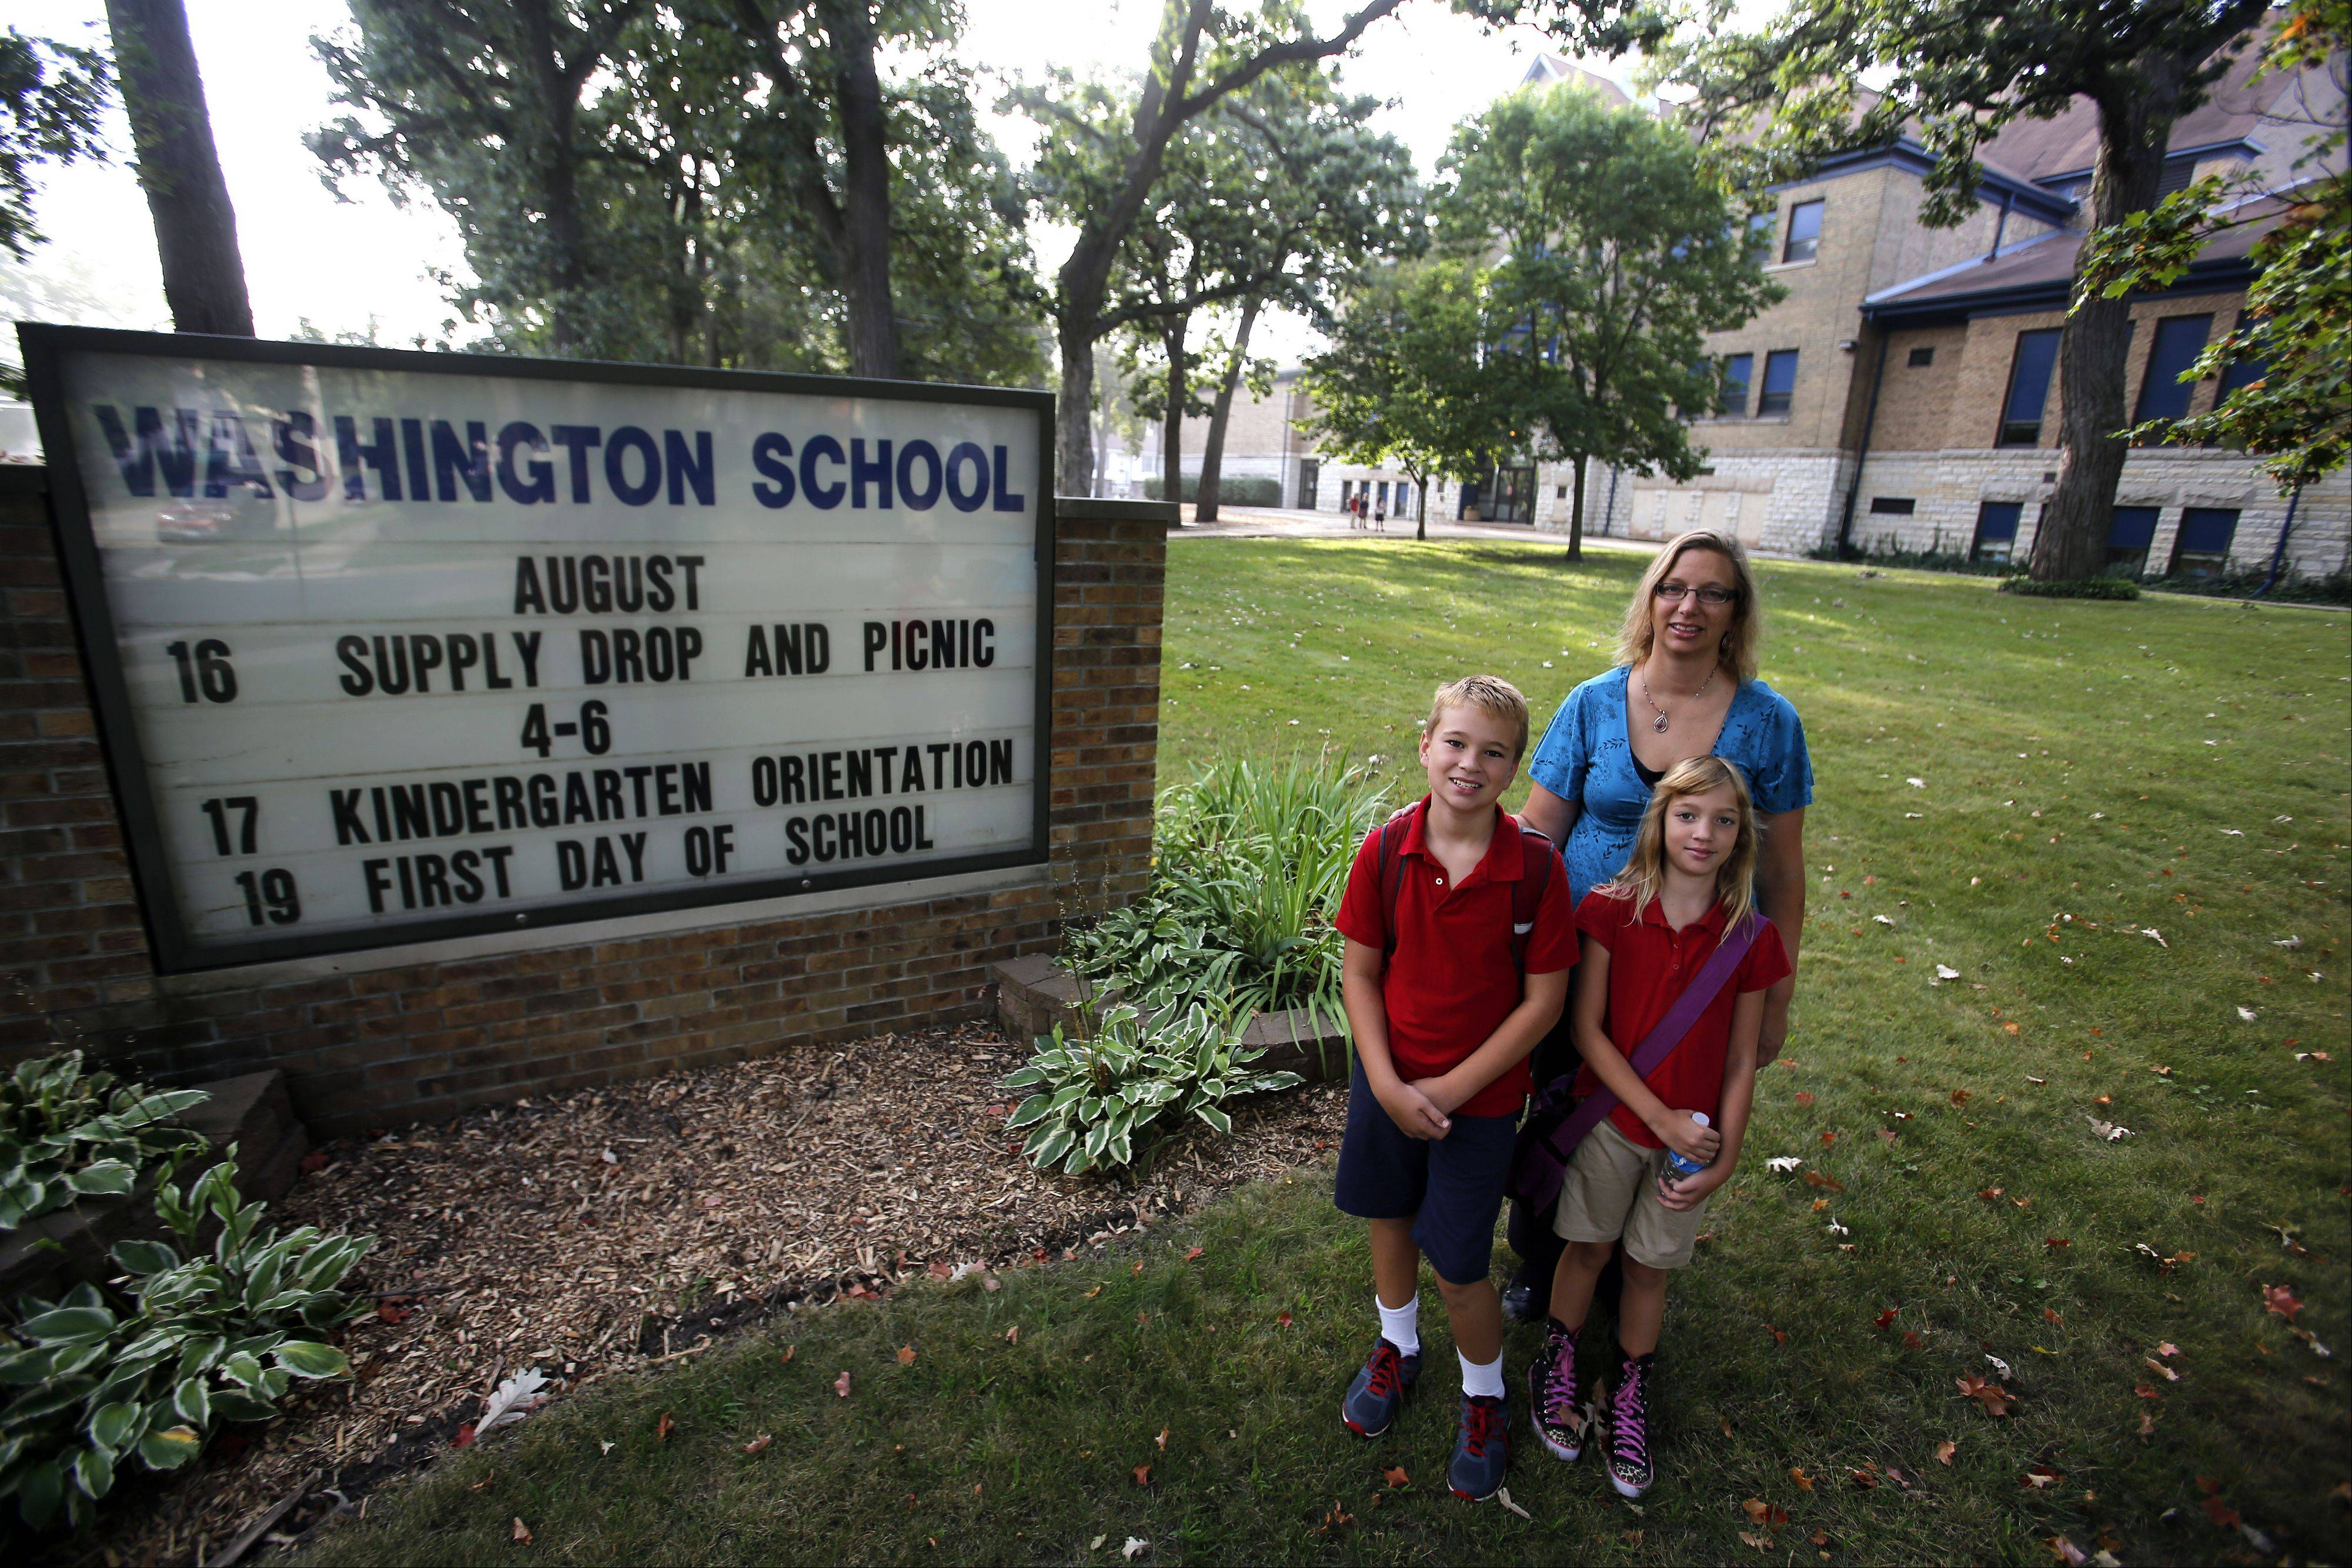 Linda Scham of Elgin thinks her children, Jakob, 10, and Kayla, 9, are getting a good education at Washington Elementary School in Elgin.